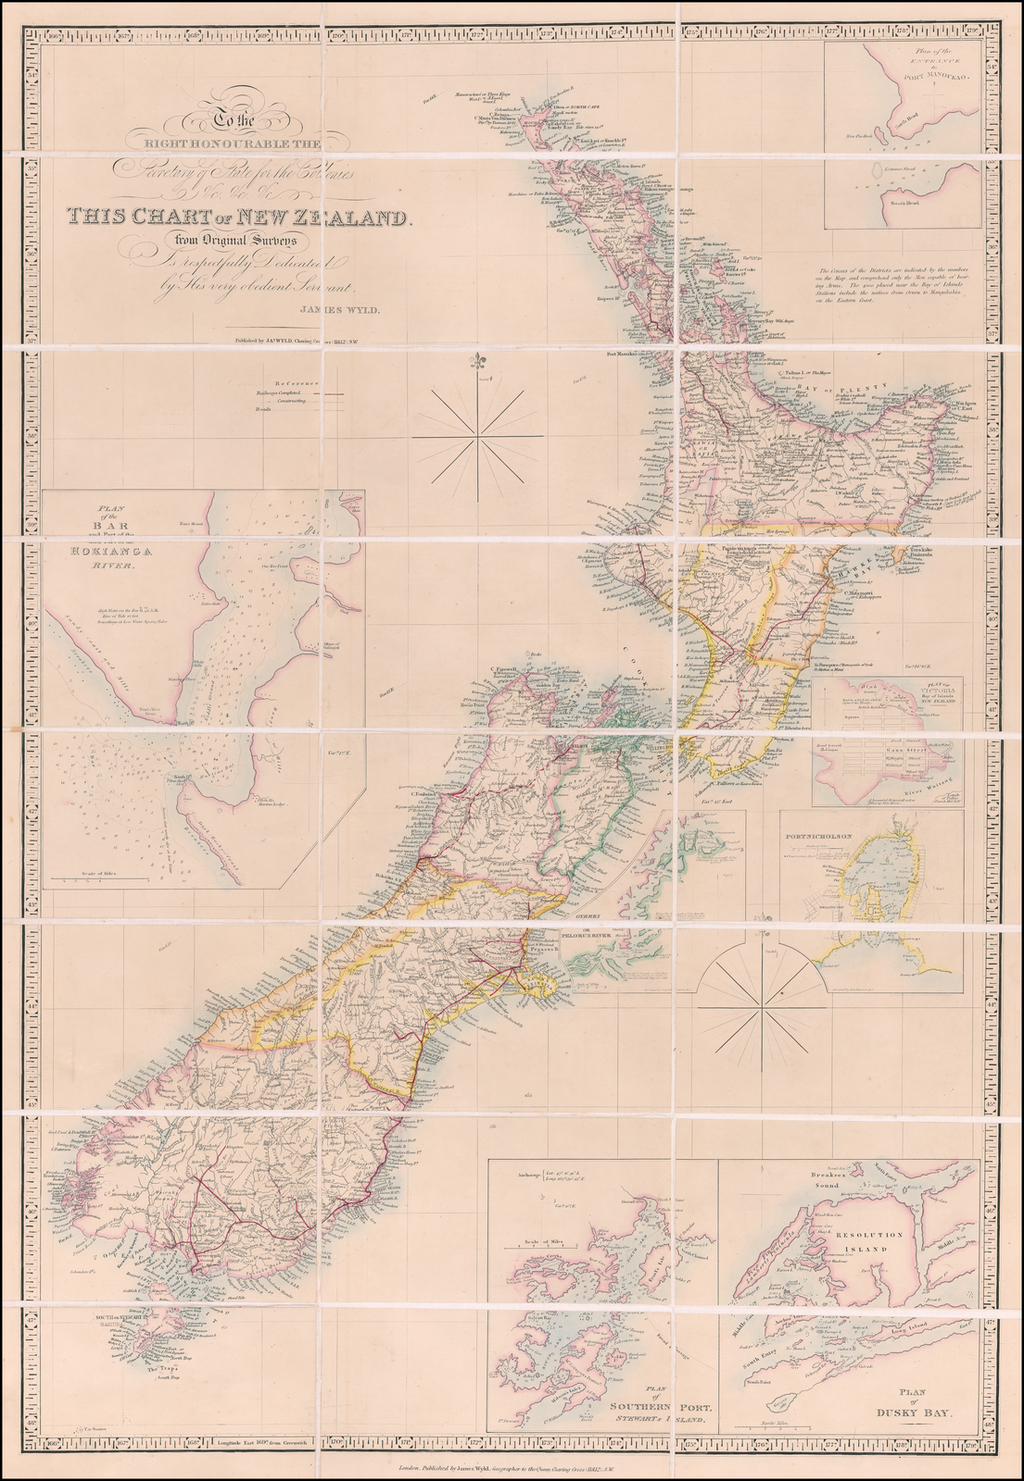 To the Right Honourable The Secretary of State for the Colonies &c. &c. &c.  This Chart of New Zealand, from Original Surveys Is respectfully Dedicate by his very obdient Servant, James Wyld. By James Wyld